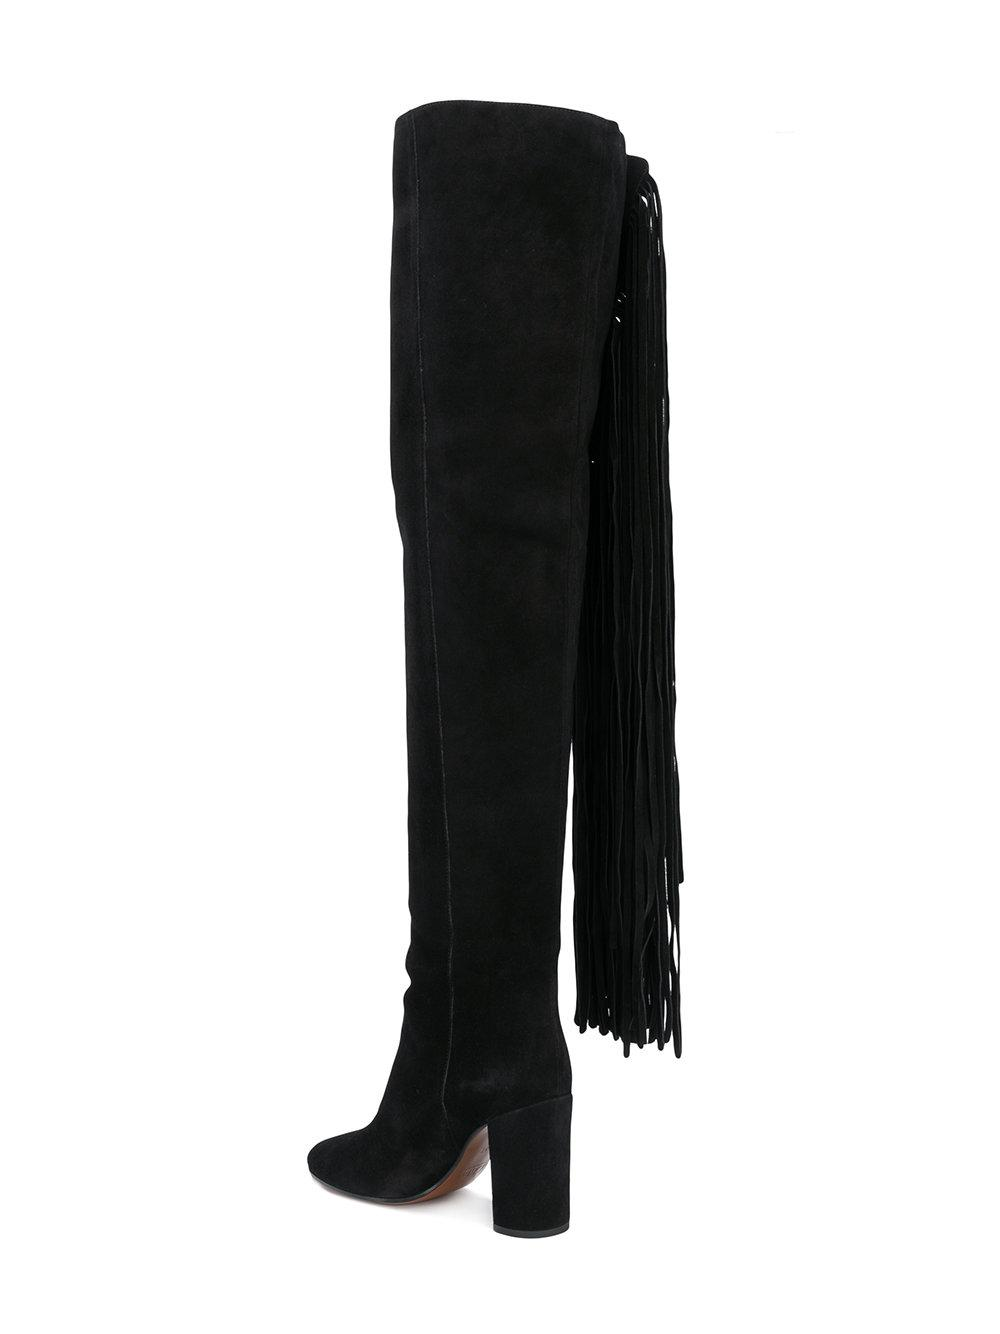 Qaisha fringed over-the-knee boots - Black Chlo</ototo></div>                                   <span></span>                               </div>             <div>                                       <h3>                     Summer Programs in Austria for Voice, Piano, Orchestra                 </h3>                                 </div>                             <div>                                     <div>                       AIMS Graz                    </div>                                     <div>                       Summer Vocal, Piano and Orchestra Programs                    </div>                                 </div>                             <ul>                                     <li></li>                                     <li>                     <a href=